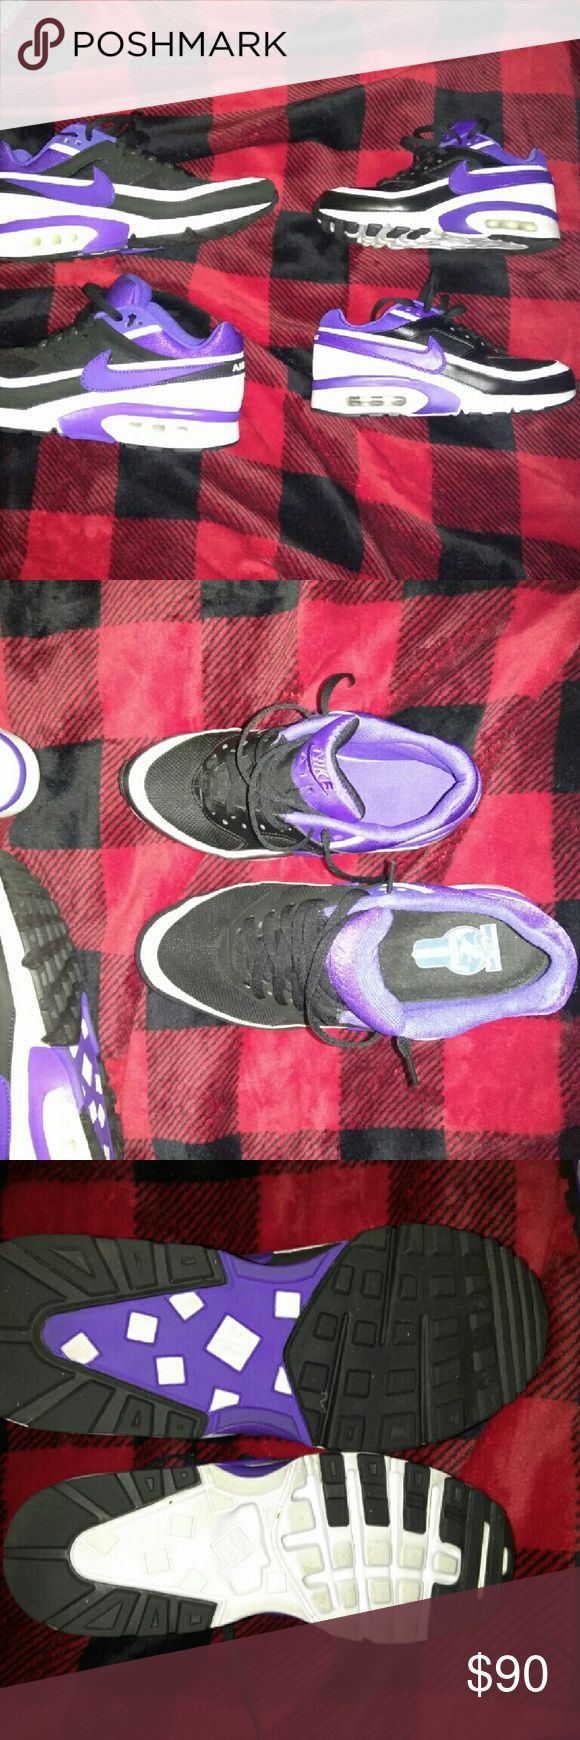 Nike Air Max's His and her's Nike Air Max's only worn twice. Not messed up at all. Nike Shoes